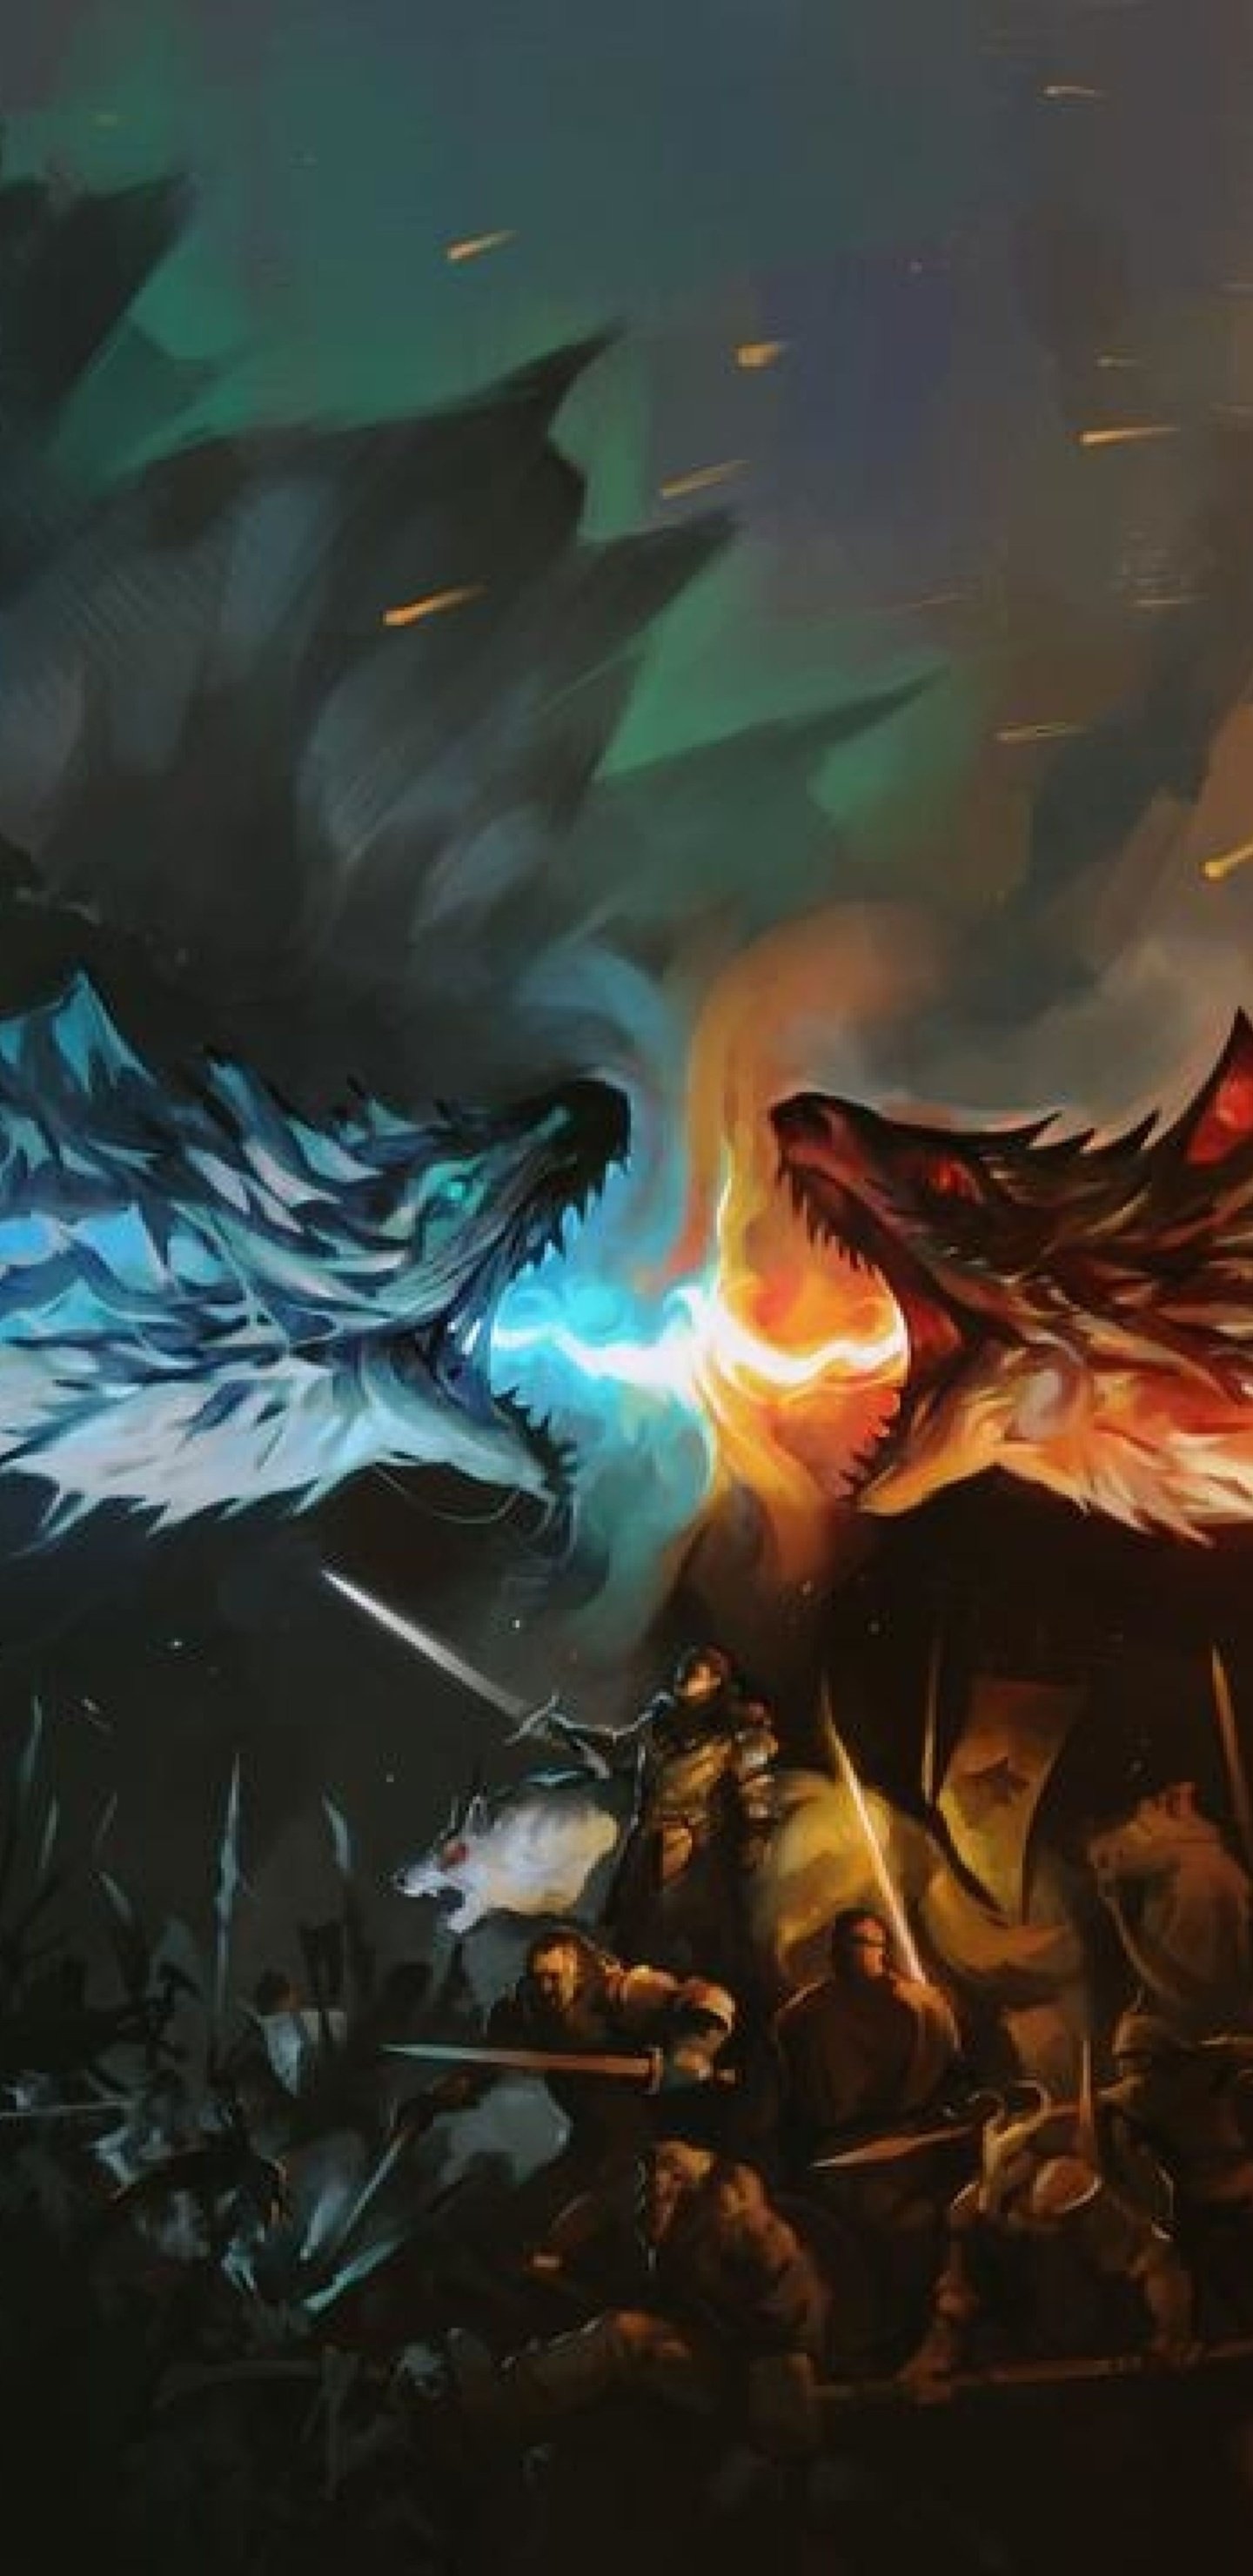 ice fire dragon game of thrones 8k yy